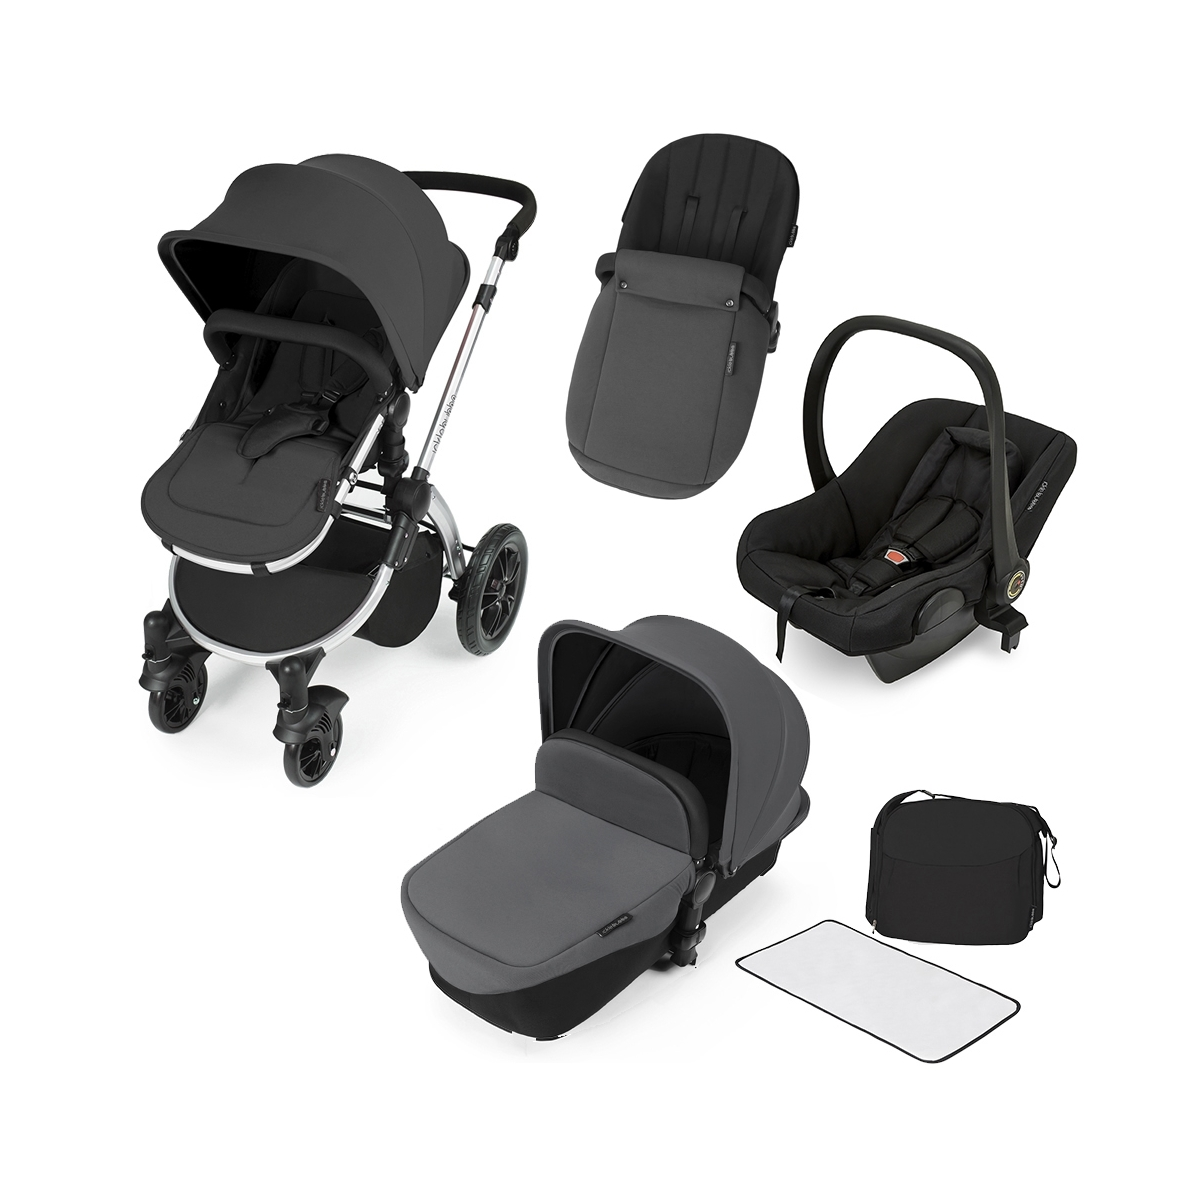 Ickle Bubba Stomp V2 Silver Frame 3in1 Travel System-Graphite Grey